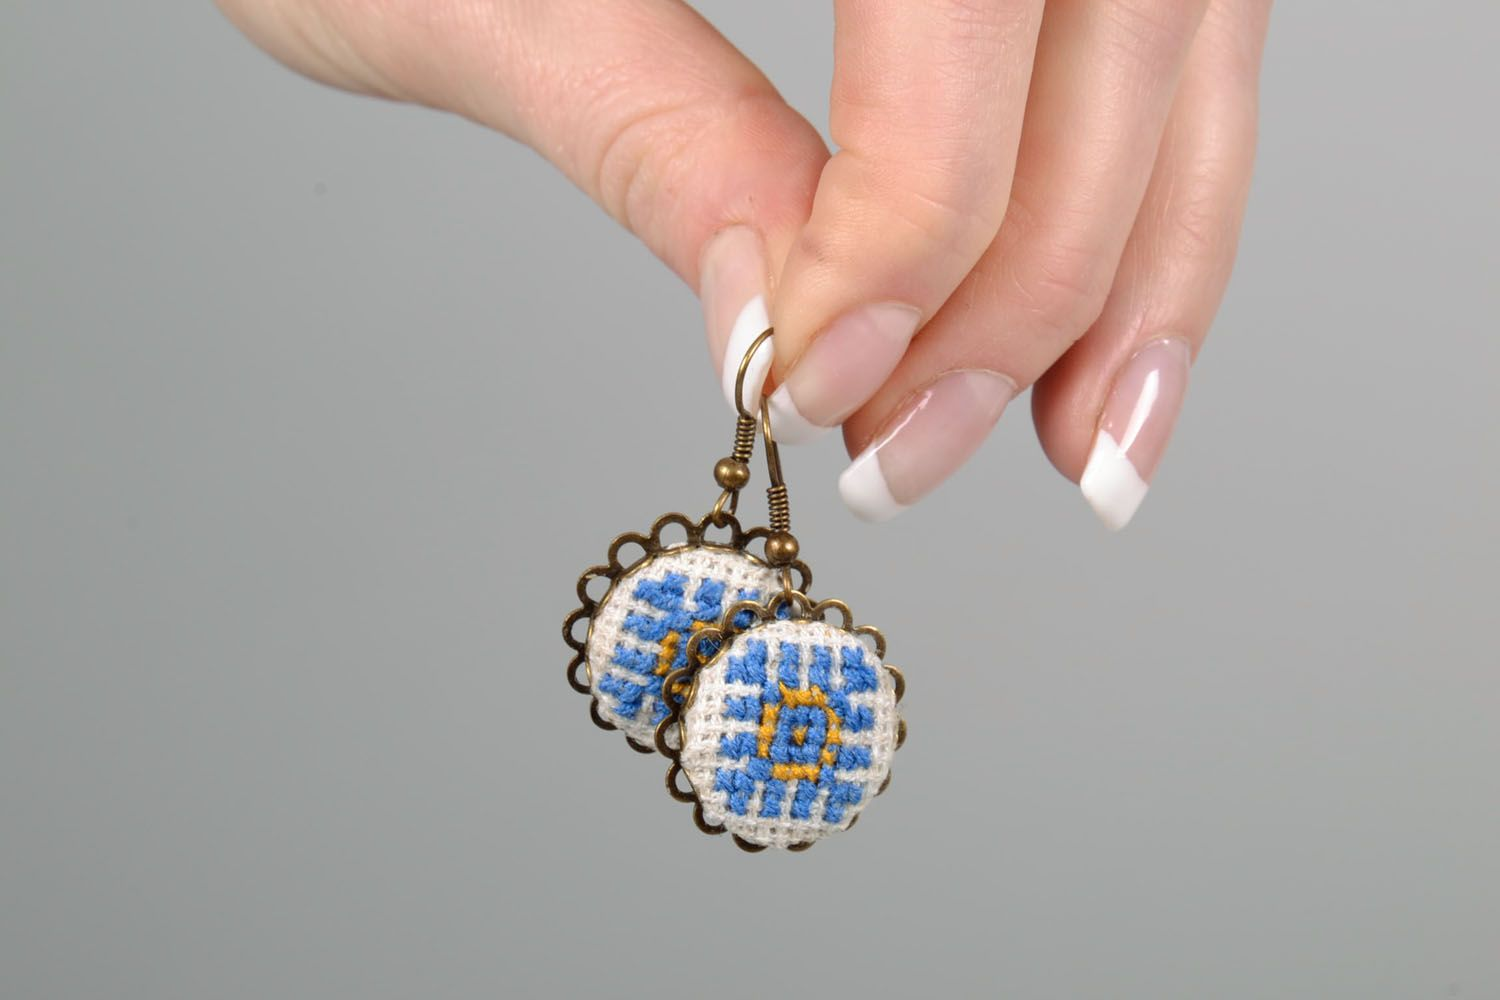 Pendant earrings with embroidery photo 5